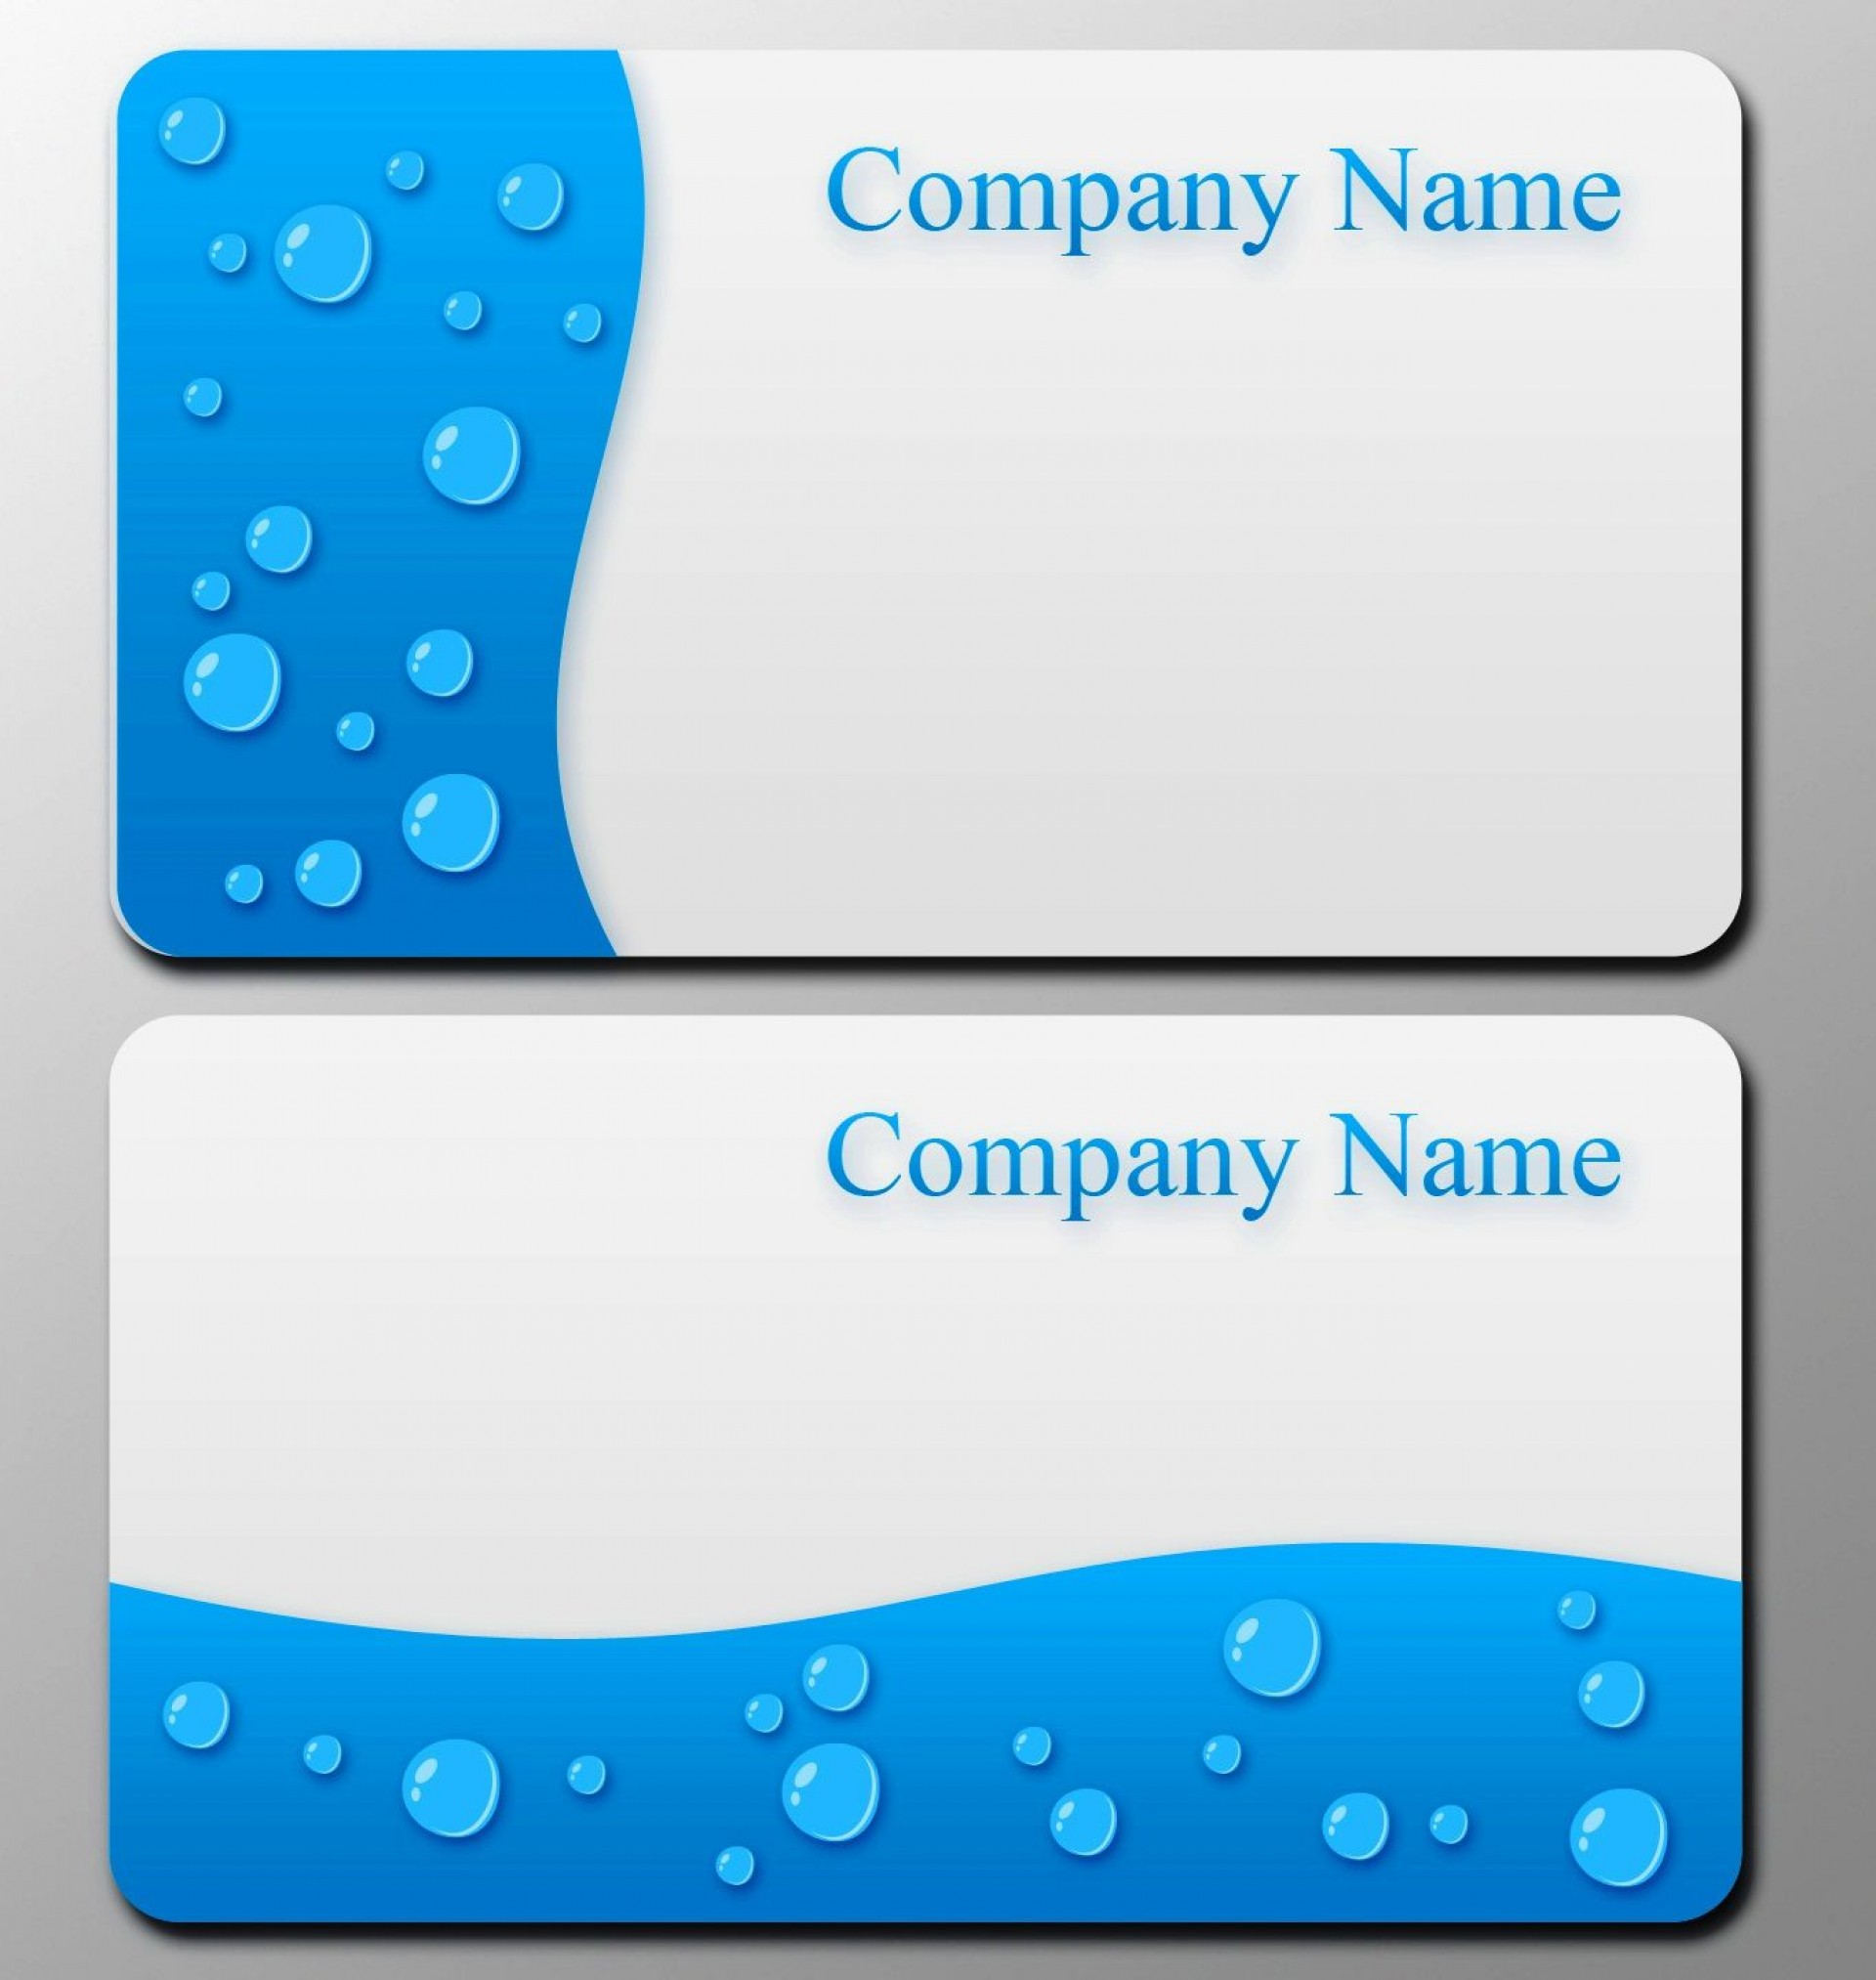 005 Imposing Free Blank Busines Card Template Photoshop High Def  Download Psd1920